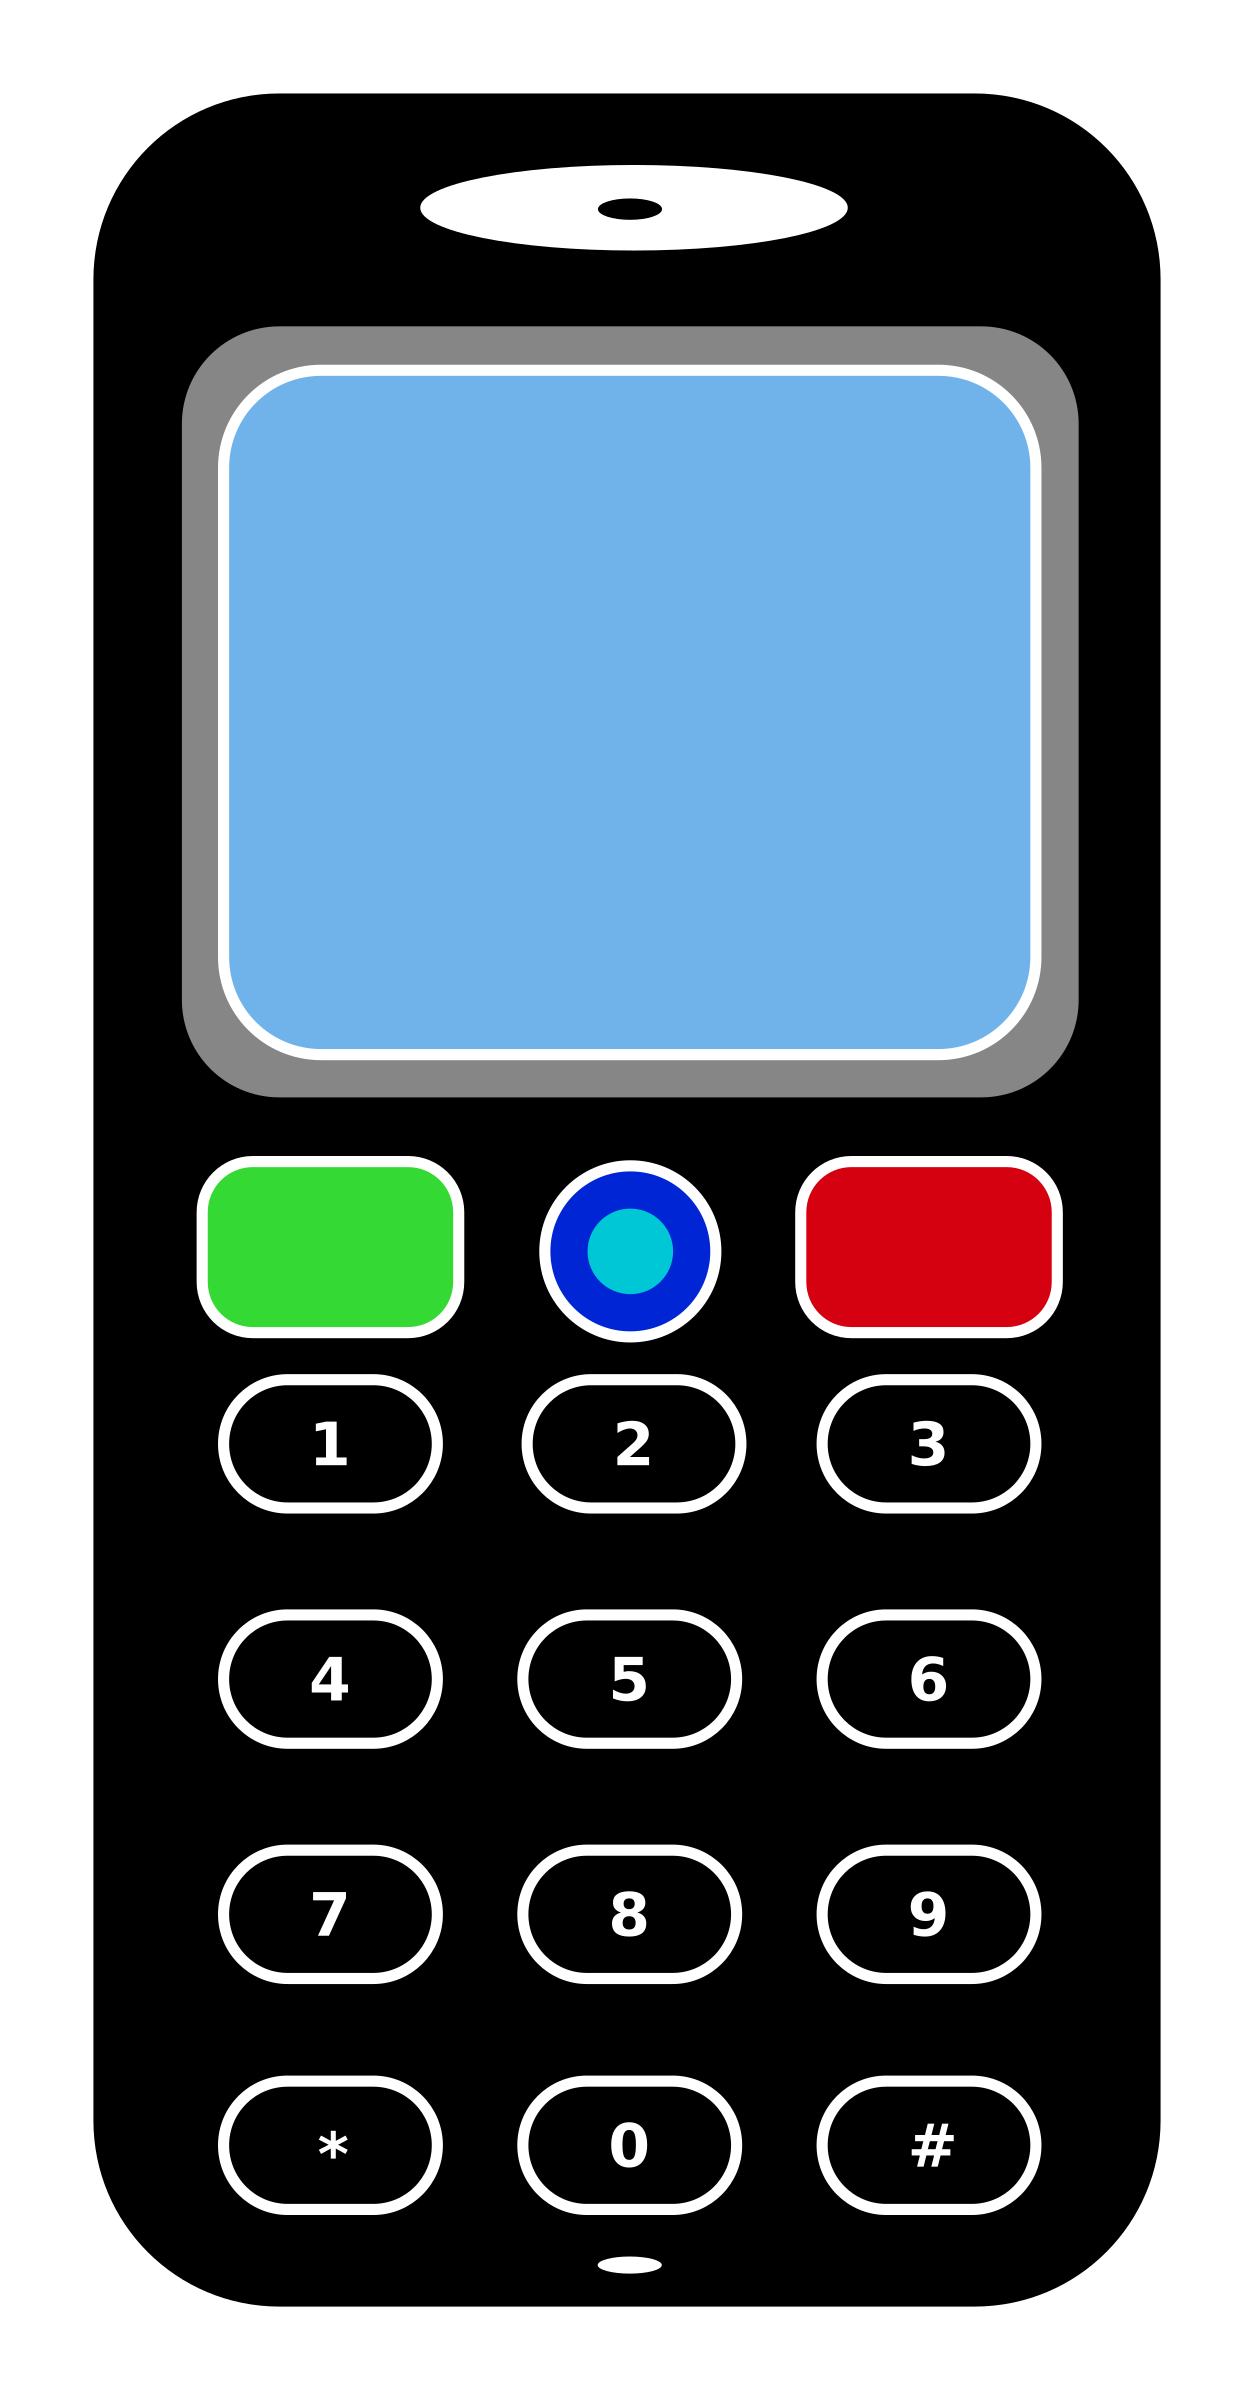 Mobile phone big image. Telephone clipart line drawing